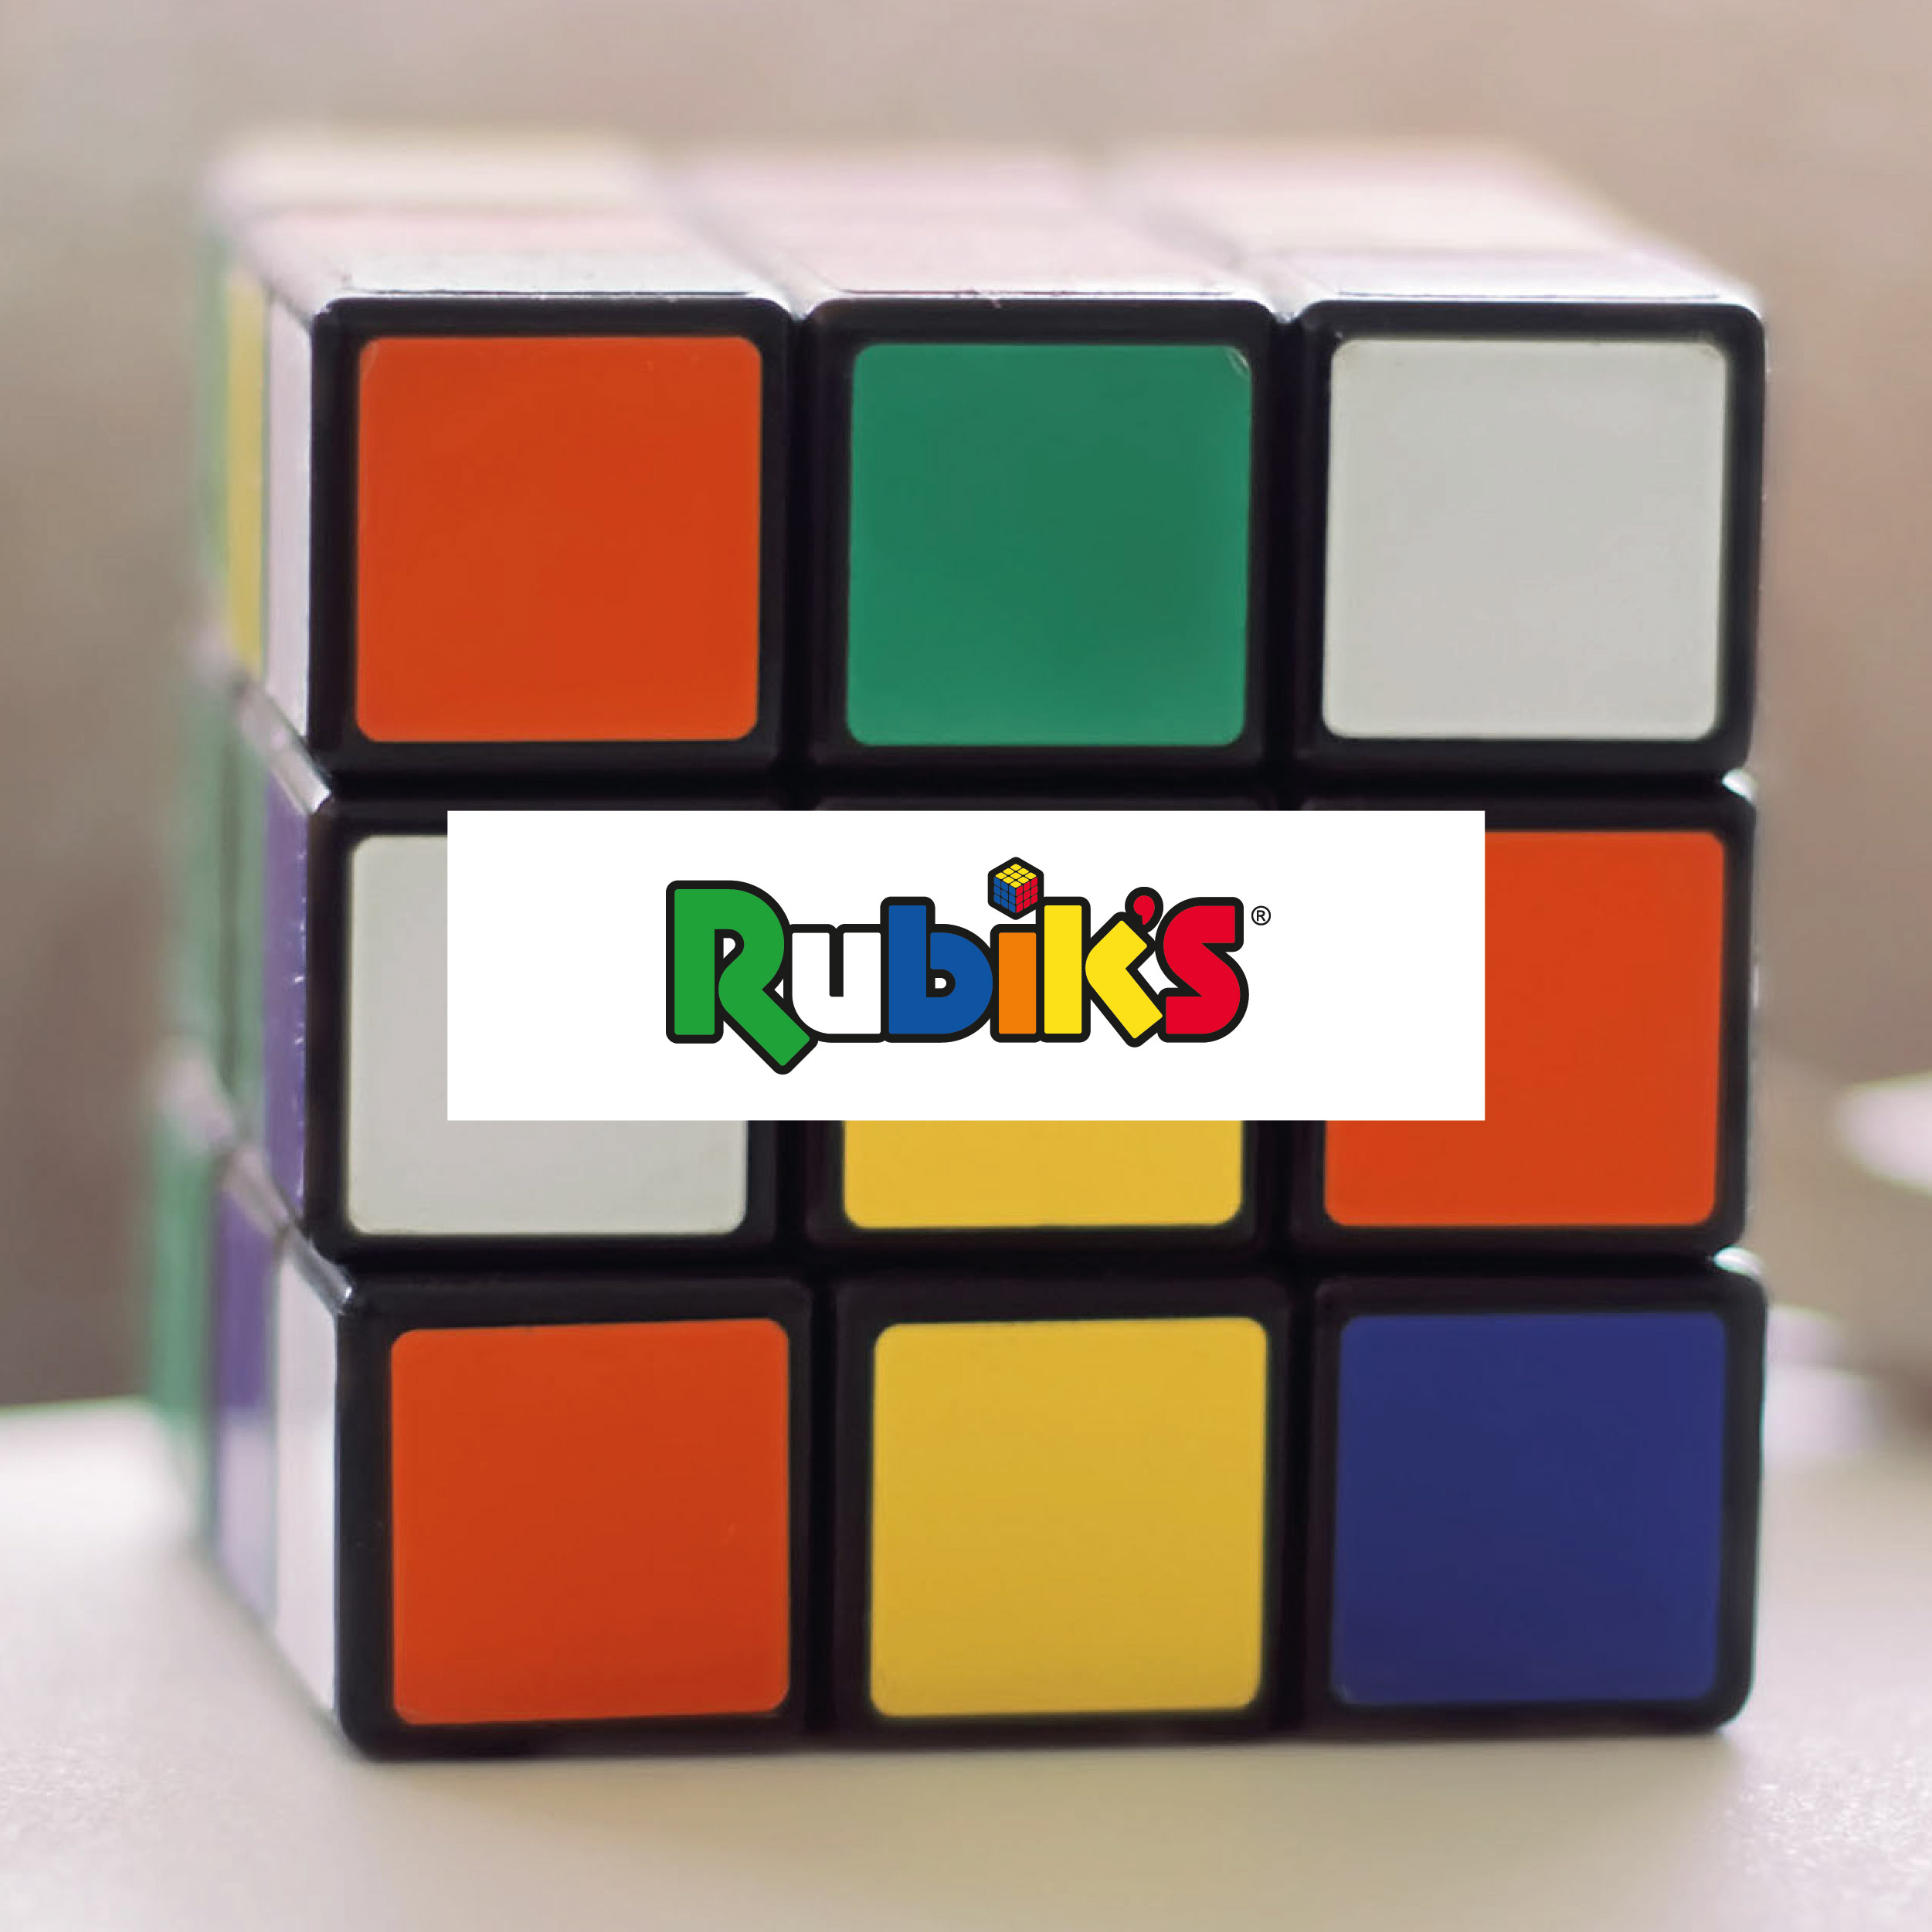 PromoBrand_Rubiks_Promotional_Merchandise_Brands_Bounce_Creative_Designs